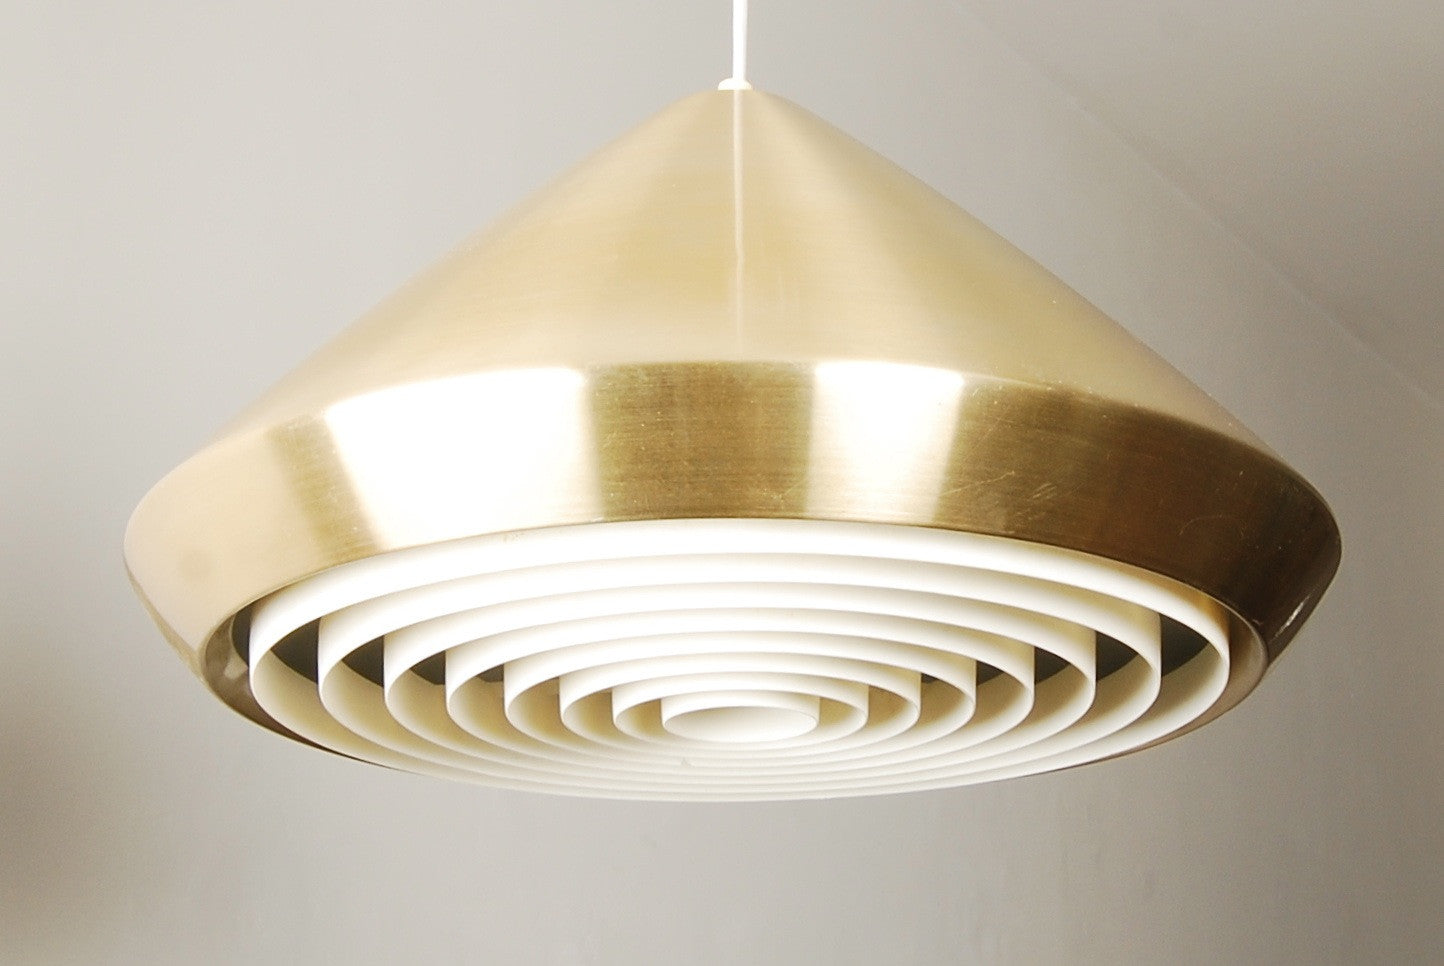 Chase & Sorensen Brass ceiling light